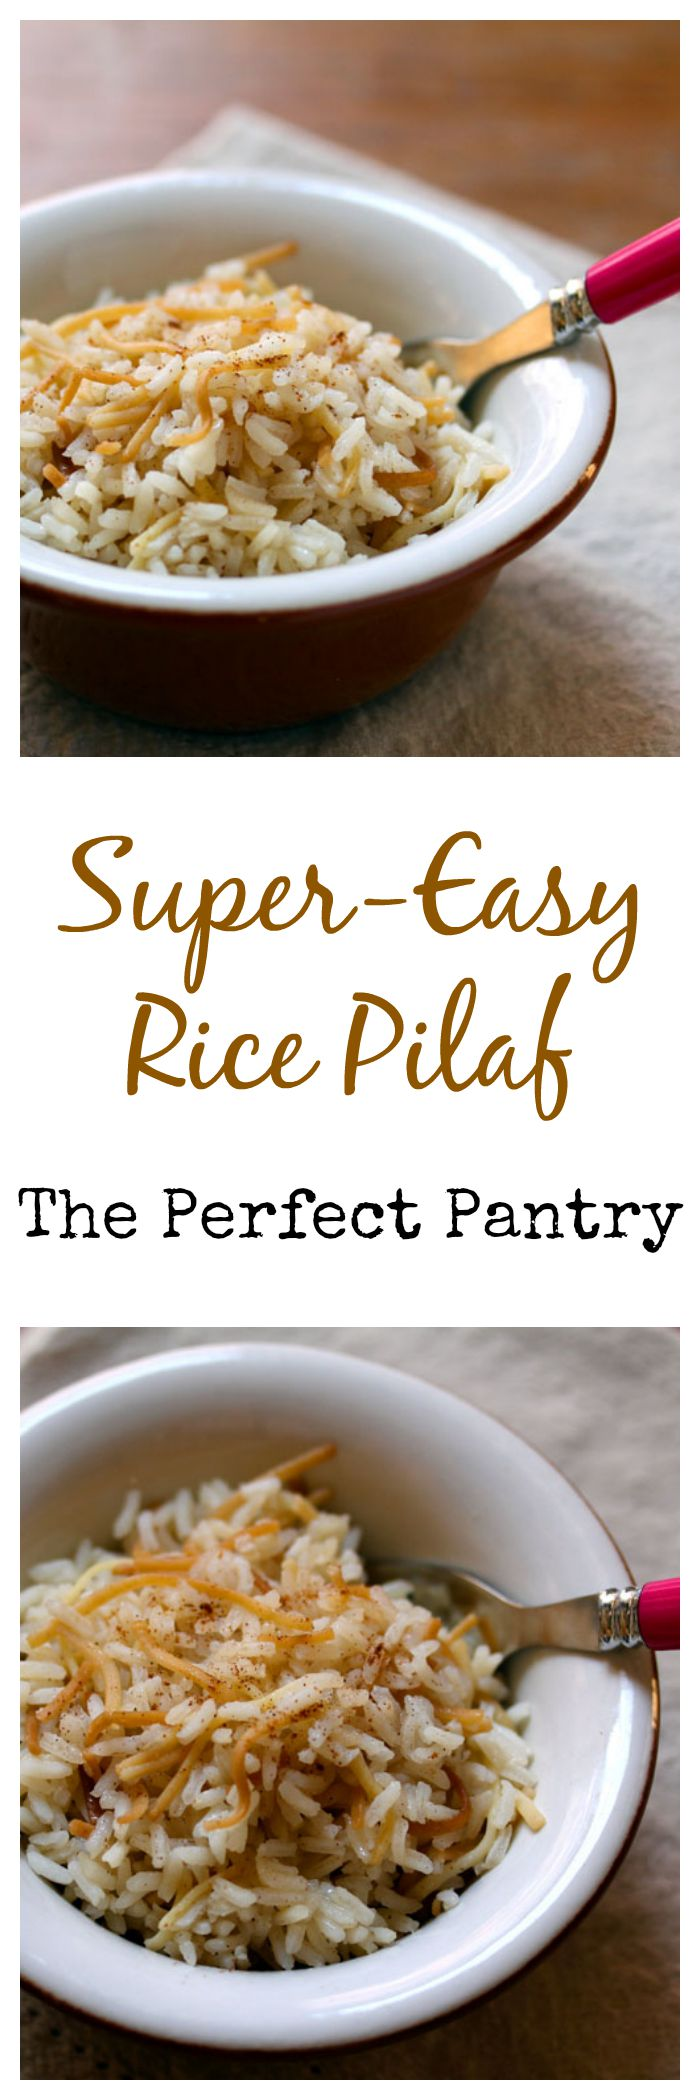 Rice pilaf easy enough to make every day, with ingredients from your pantry!